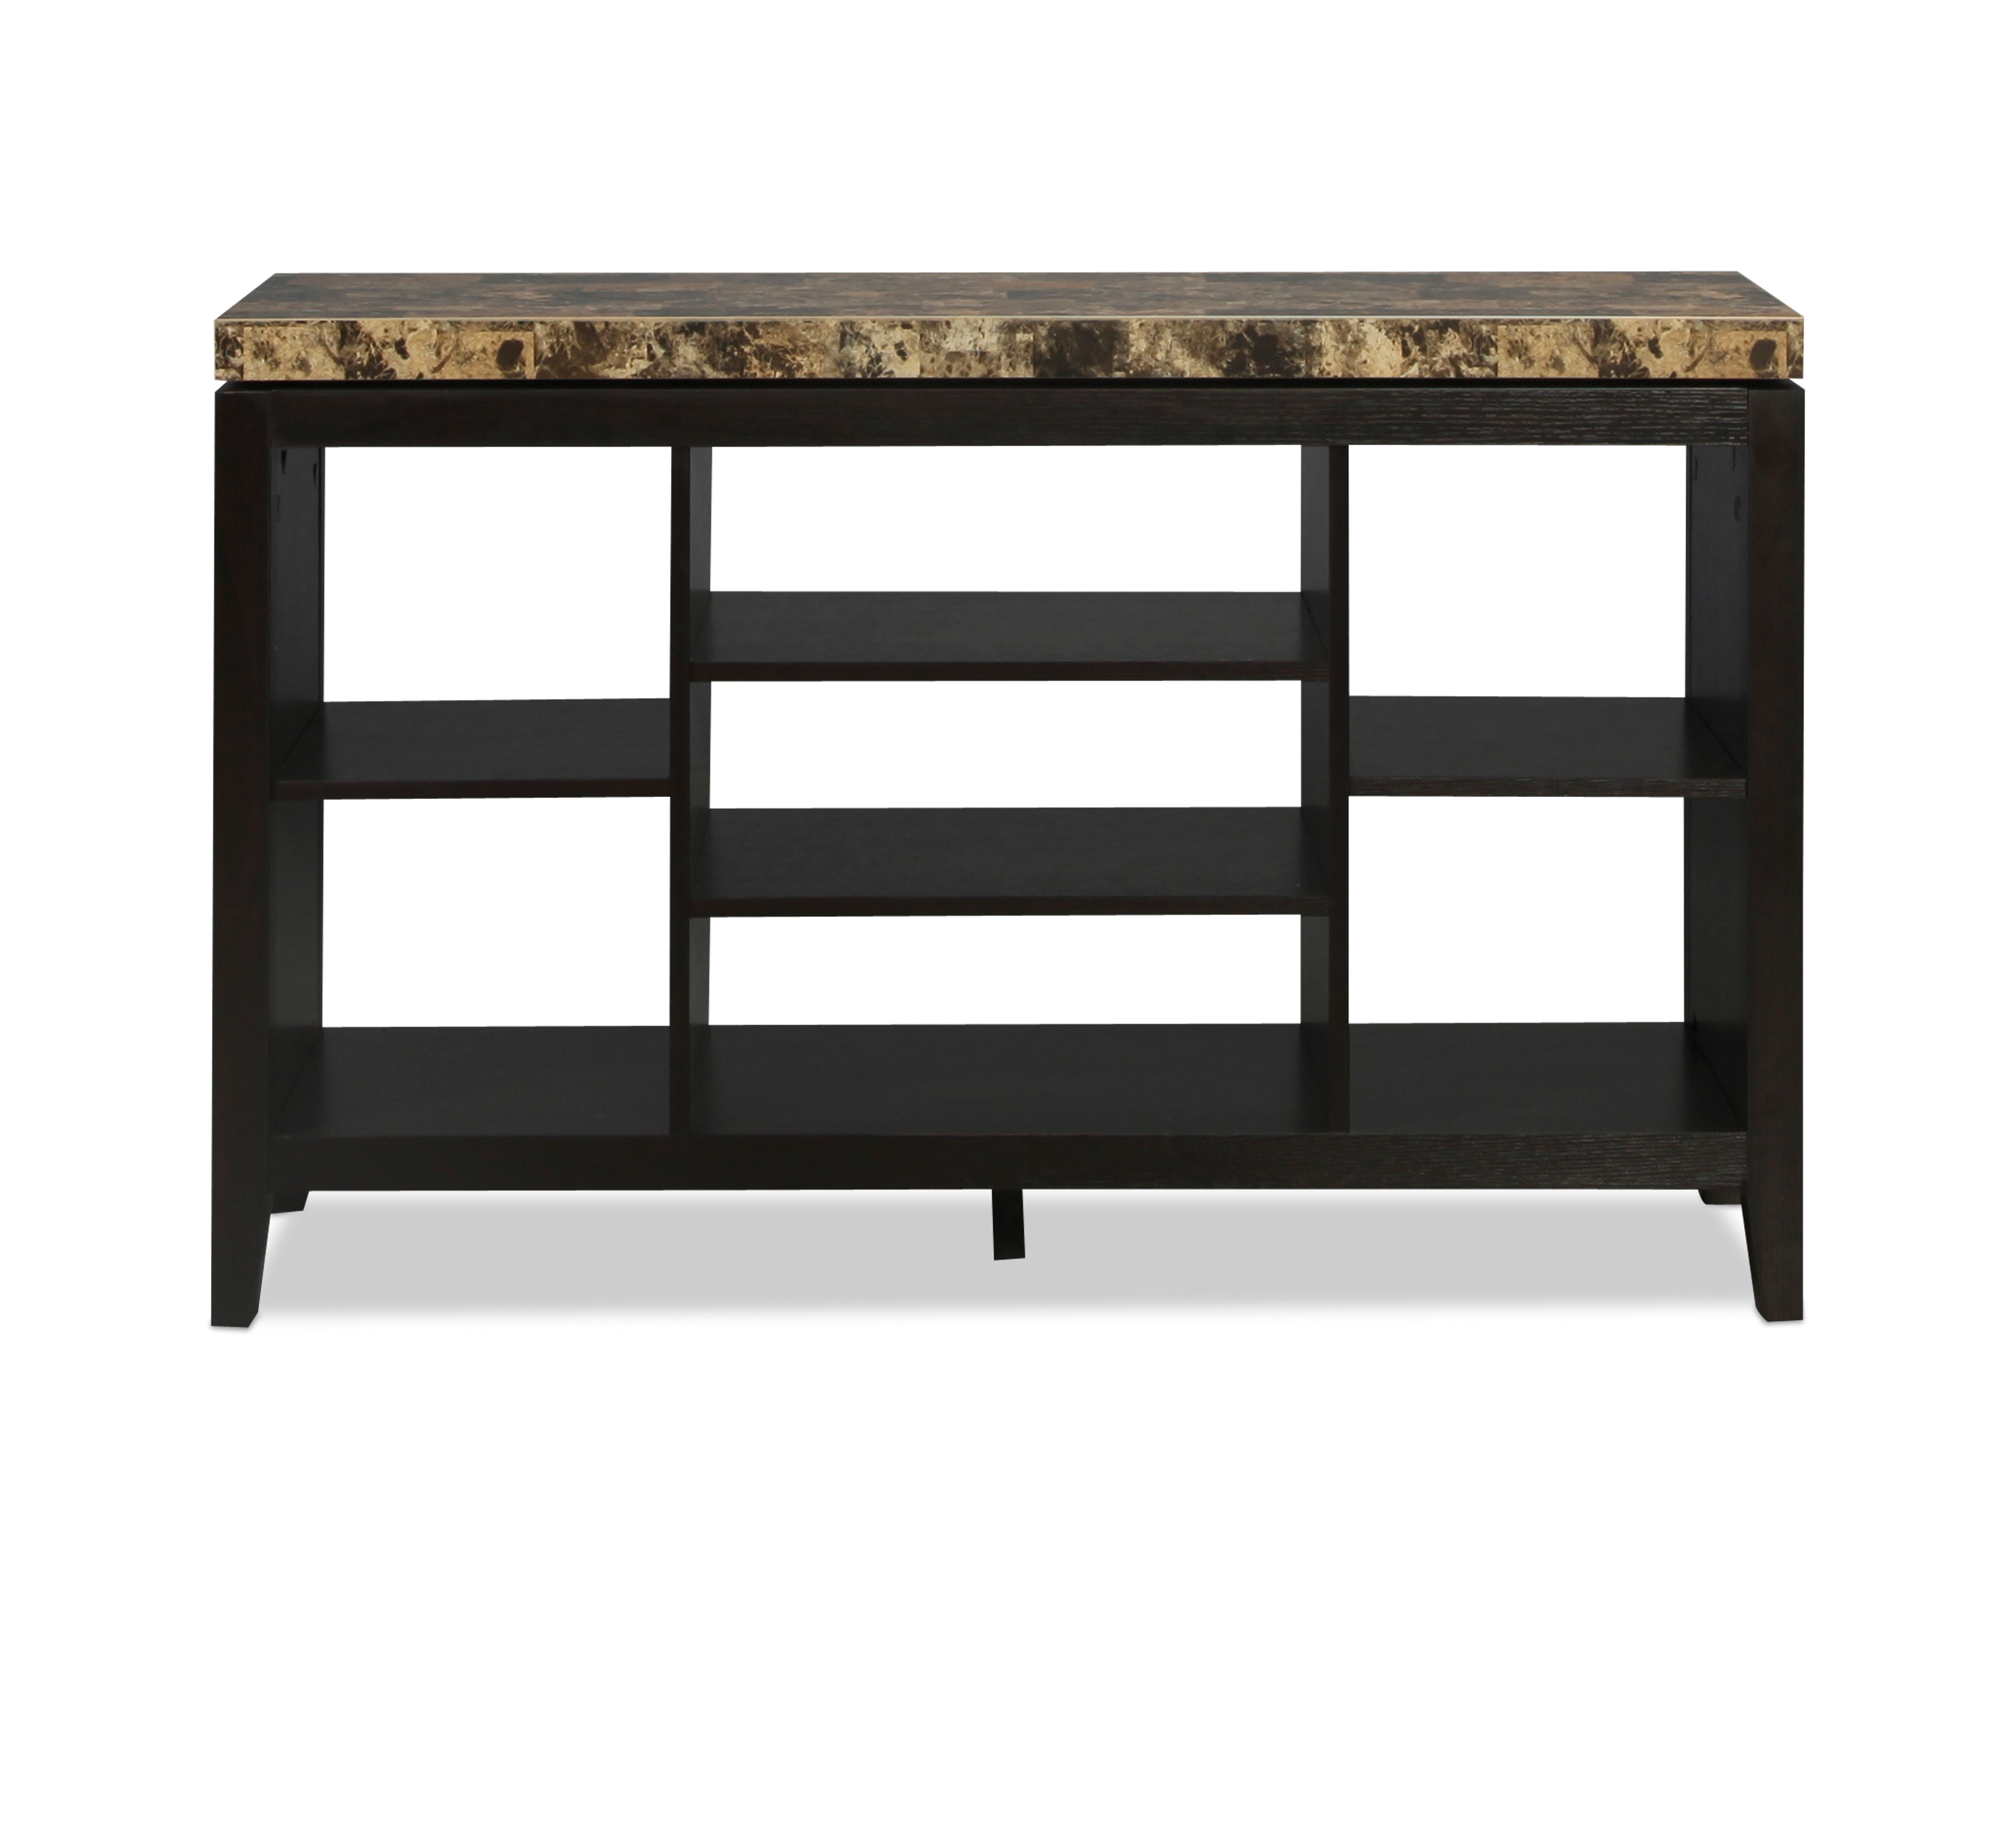 Callas TV Stand - Merlot with Faux Stone Top